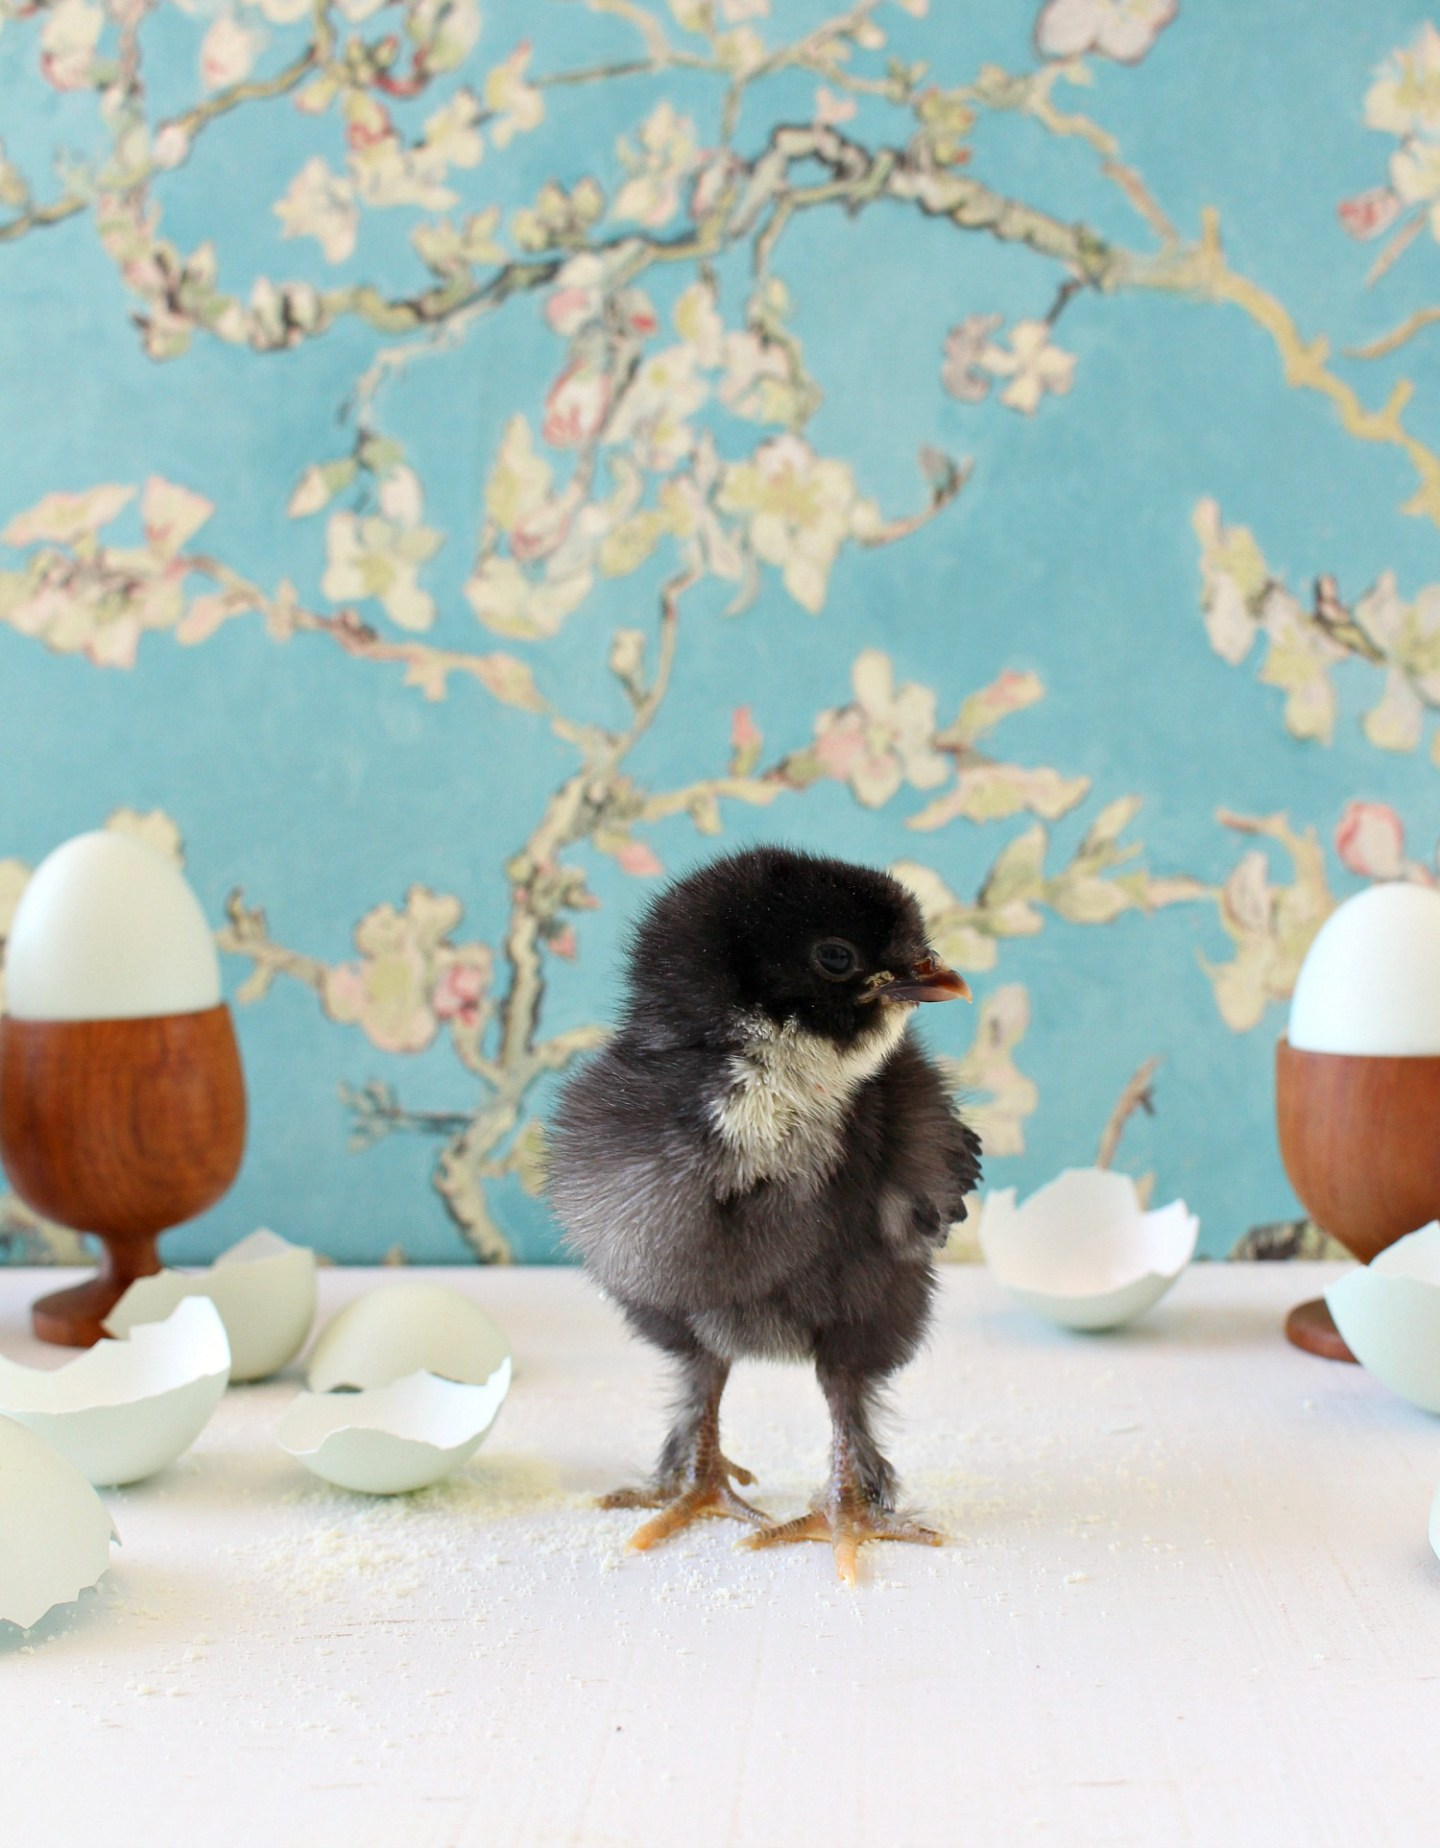 Photos of Baby Chickens